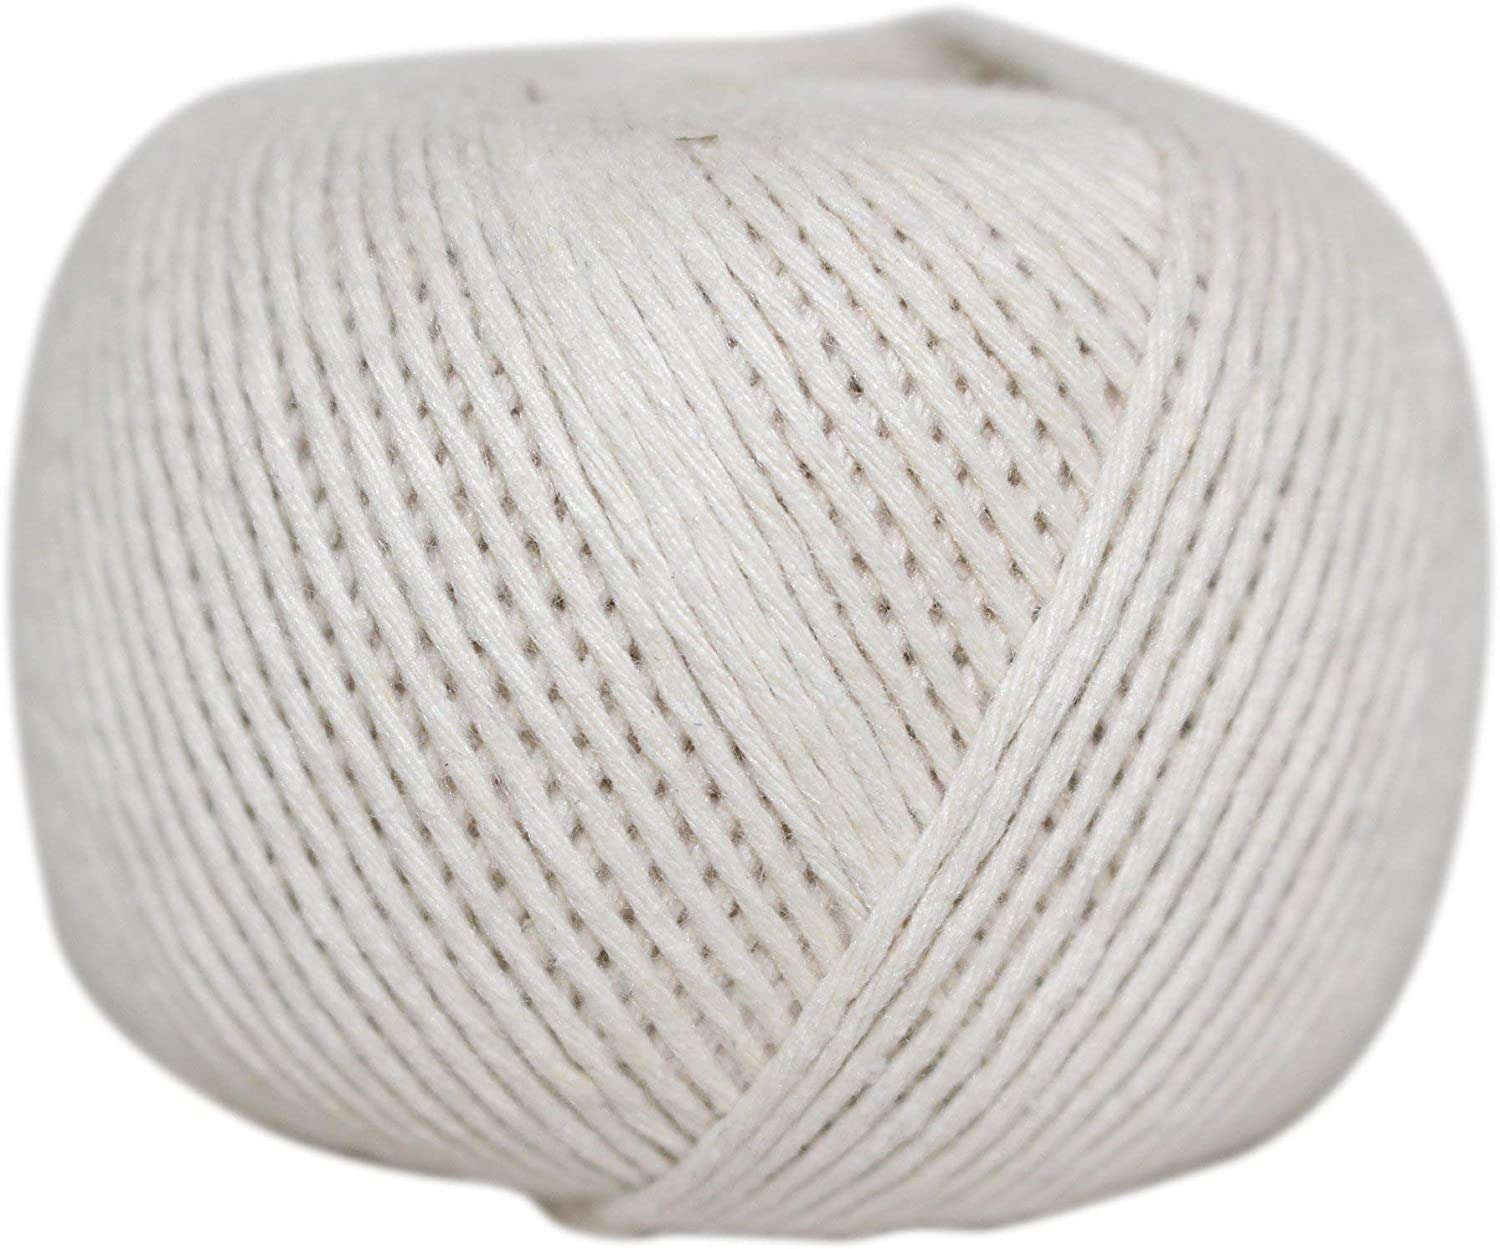 SGT KNOTS Cotton Pea Twine - String Rope for Crafts, Cooking, Kitchen, Macrame (420 feet - 1 Pack, White)